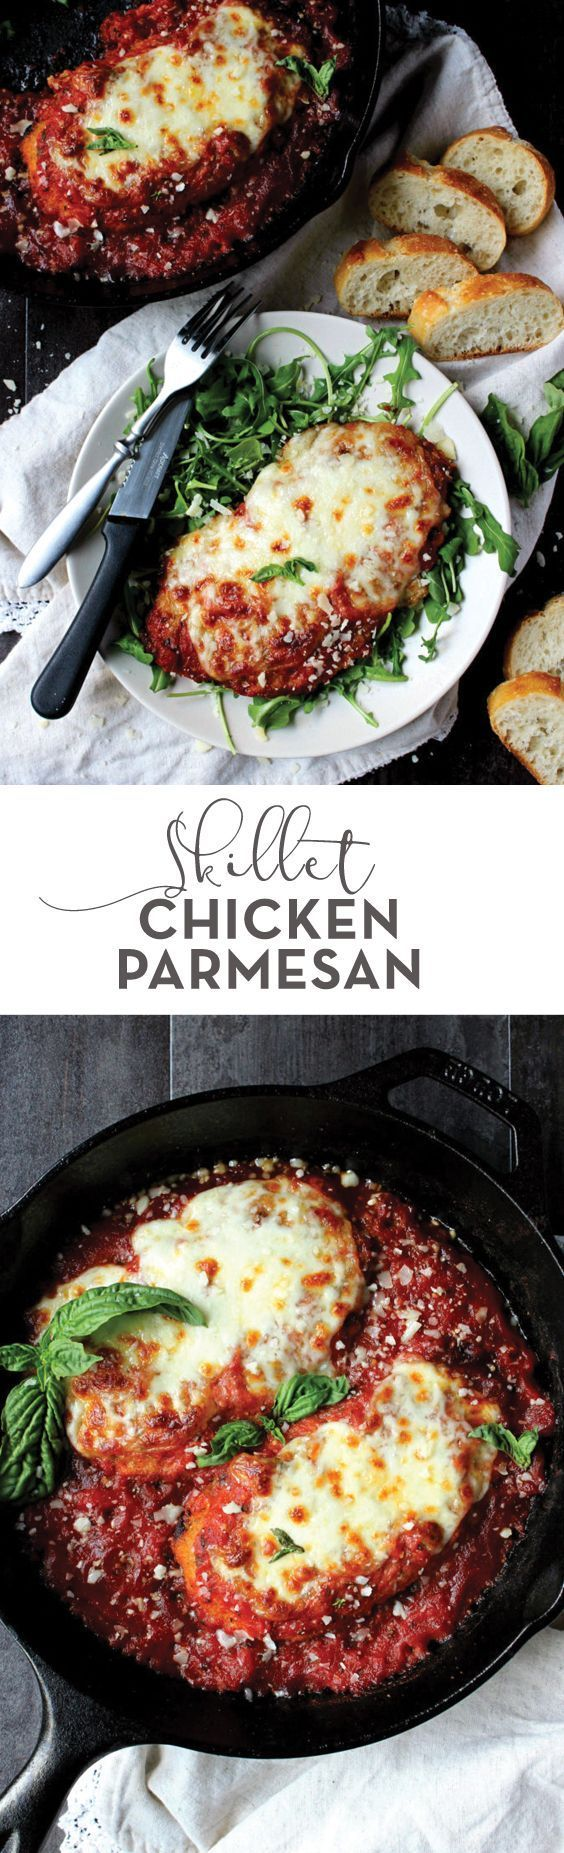 The perfect dinner for when you need a healthy comfort food splurge, this Skillet Chicken Parmesan is portioned for two and so crazy delicious! | date night dinner